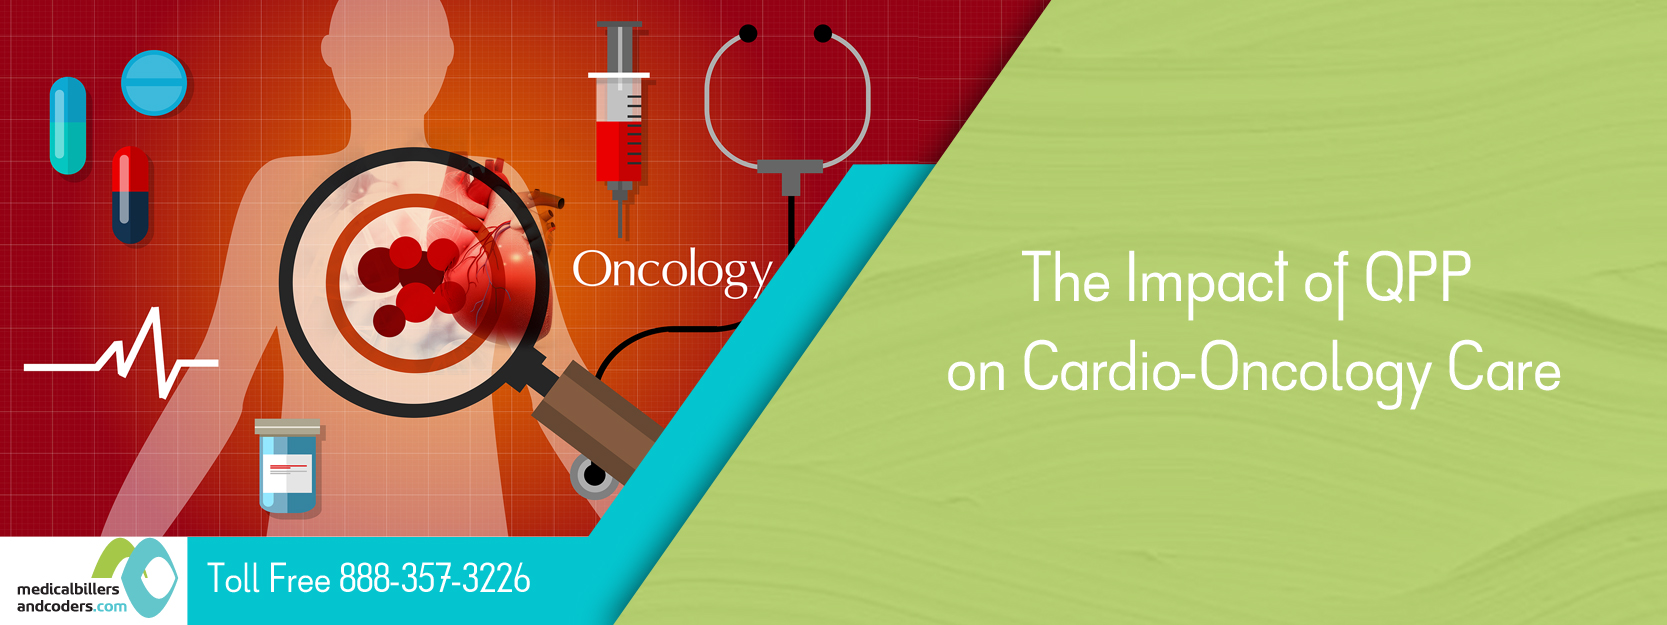 blog-the-impact-of-qpp-on-cardio-oncology-care